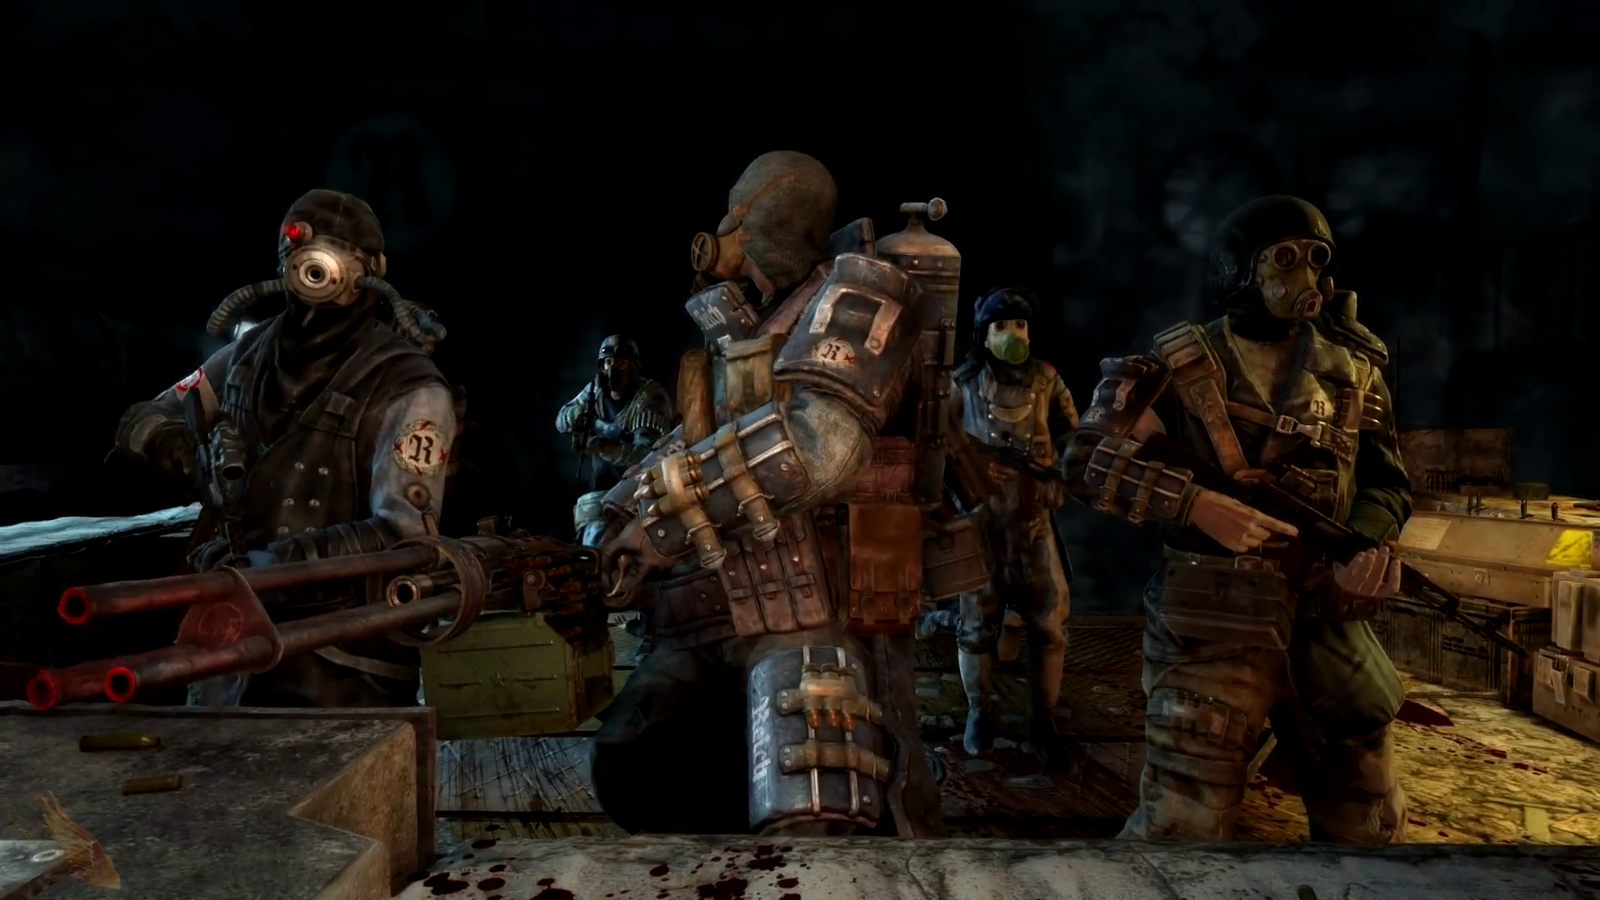 metro 2033 reich related - photo #23